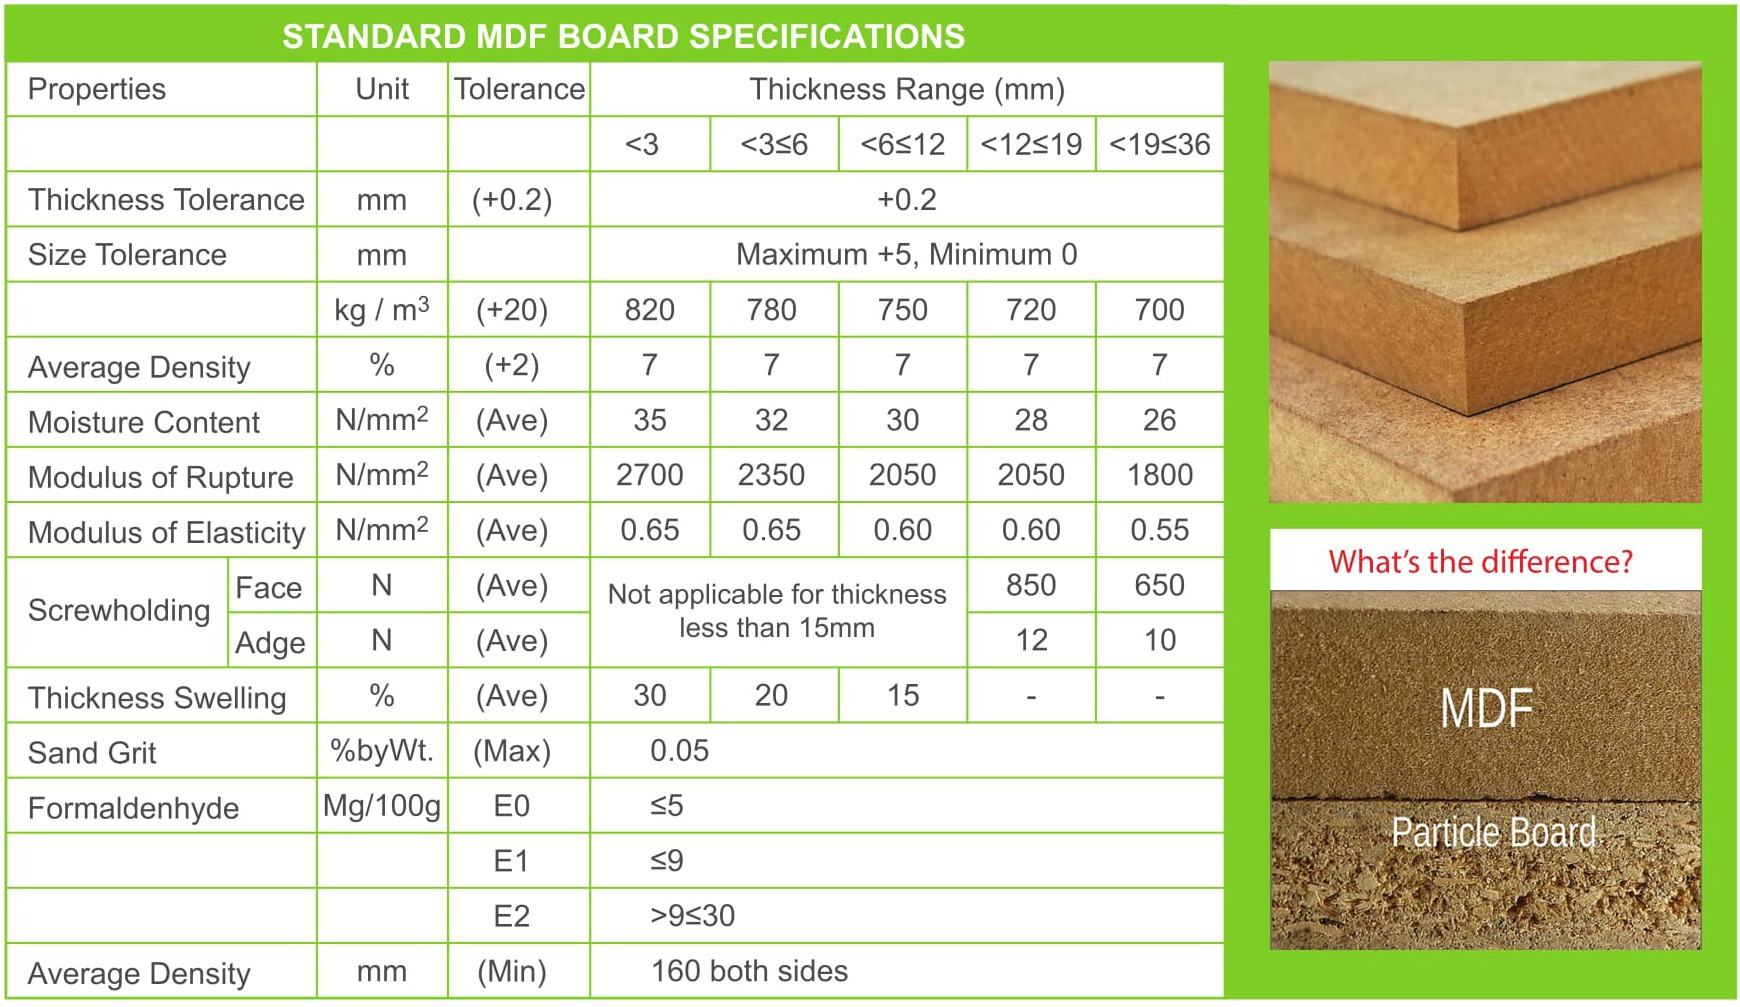 mdf board specifications